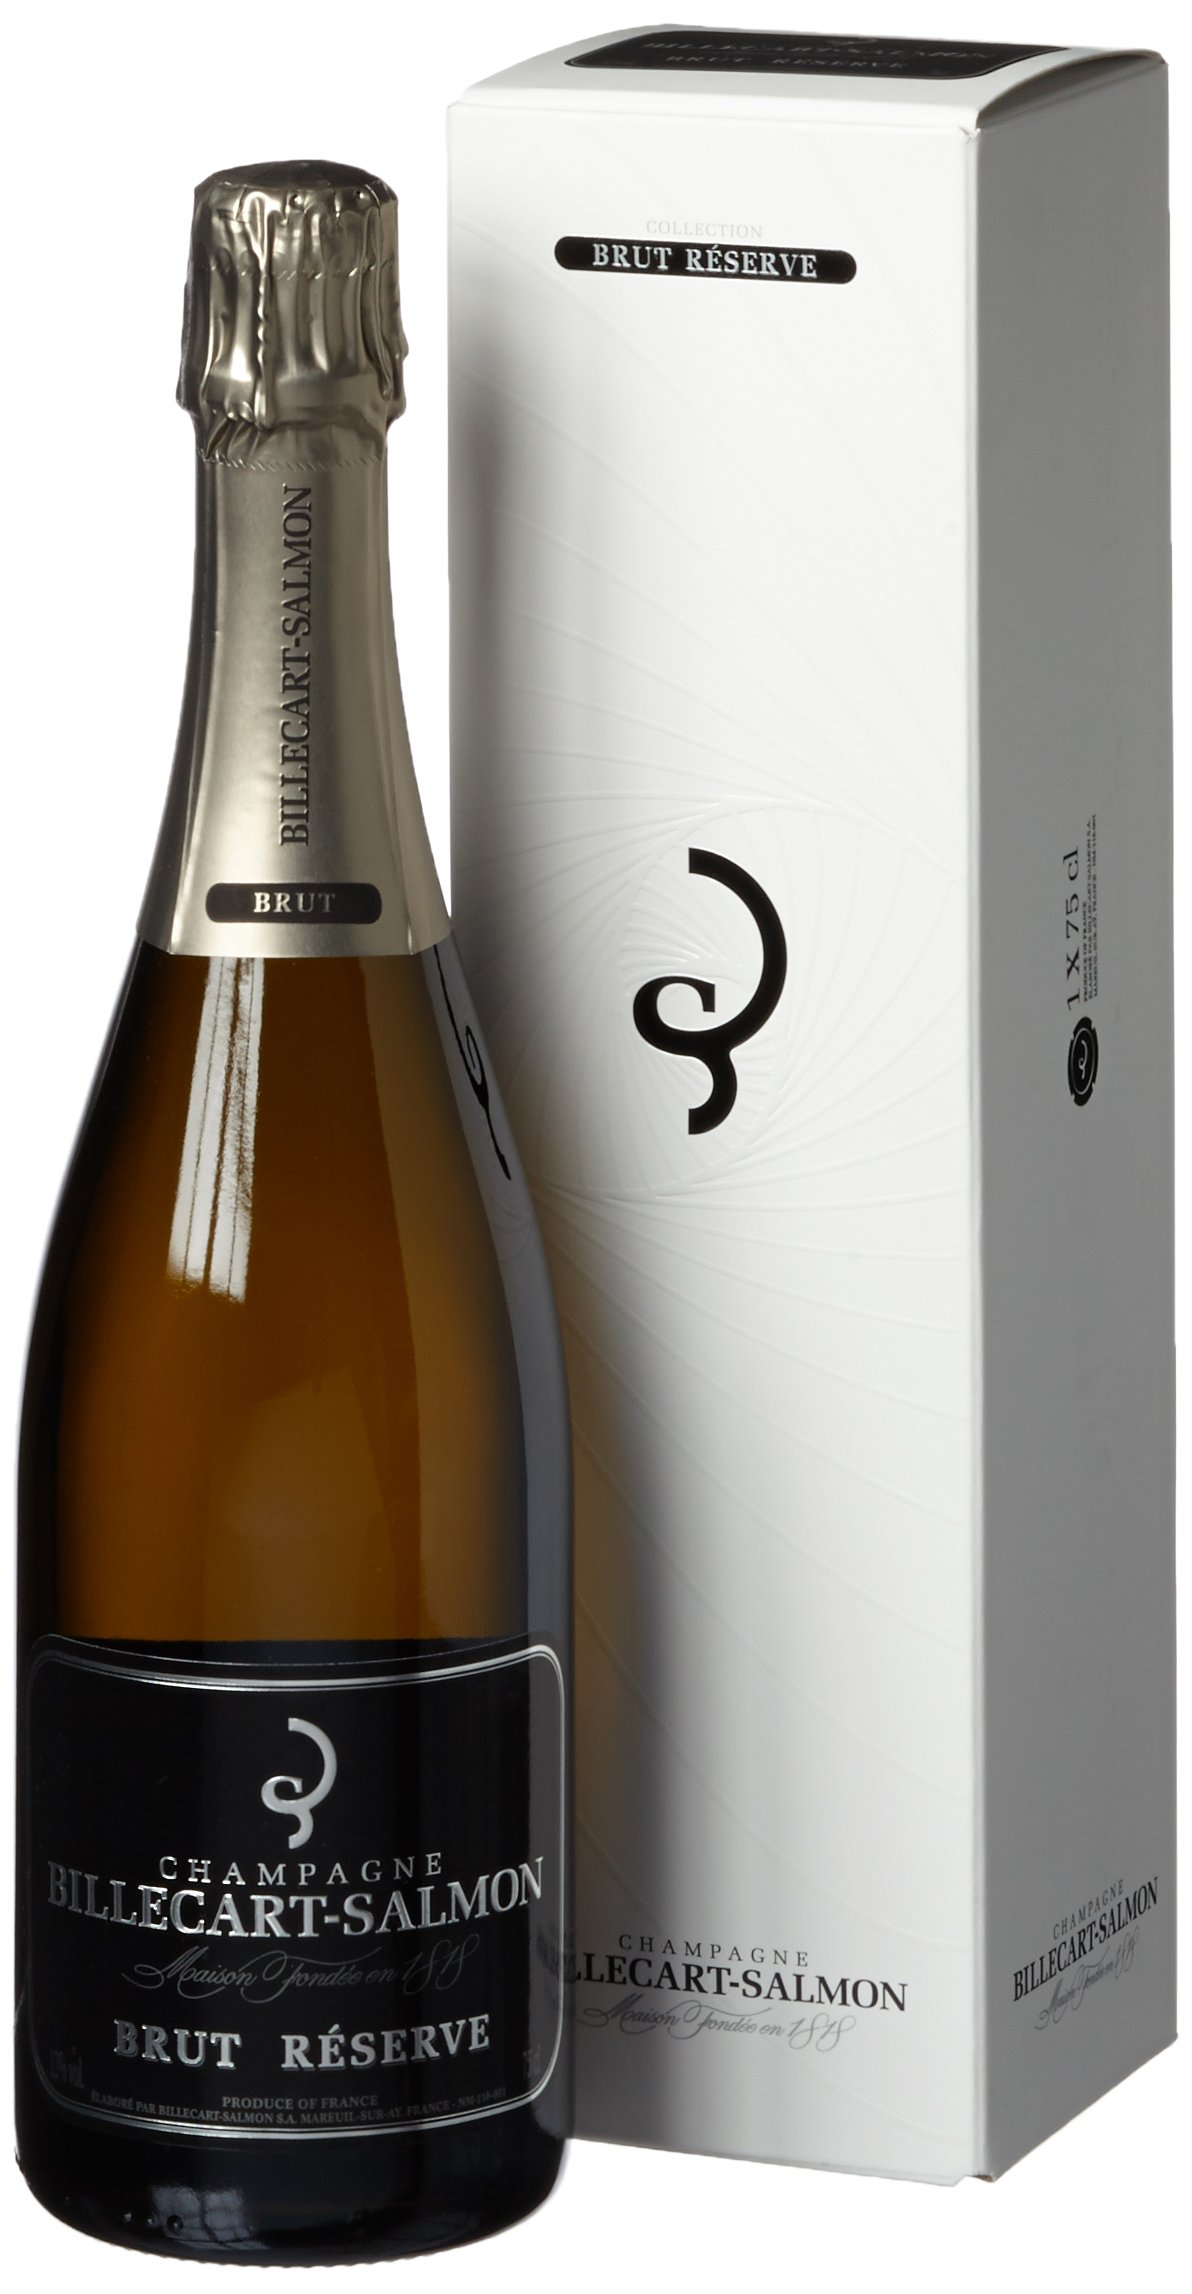 Billecart-Salmon Brut Reserve Non Vintage Champagne Gift Box, 75 cl